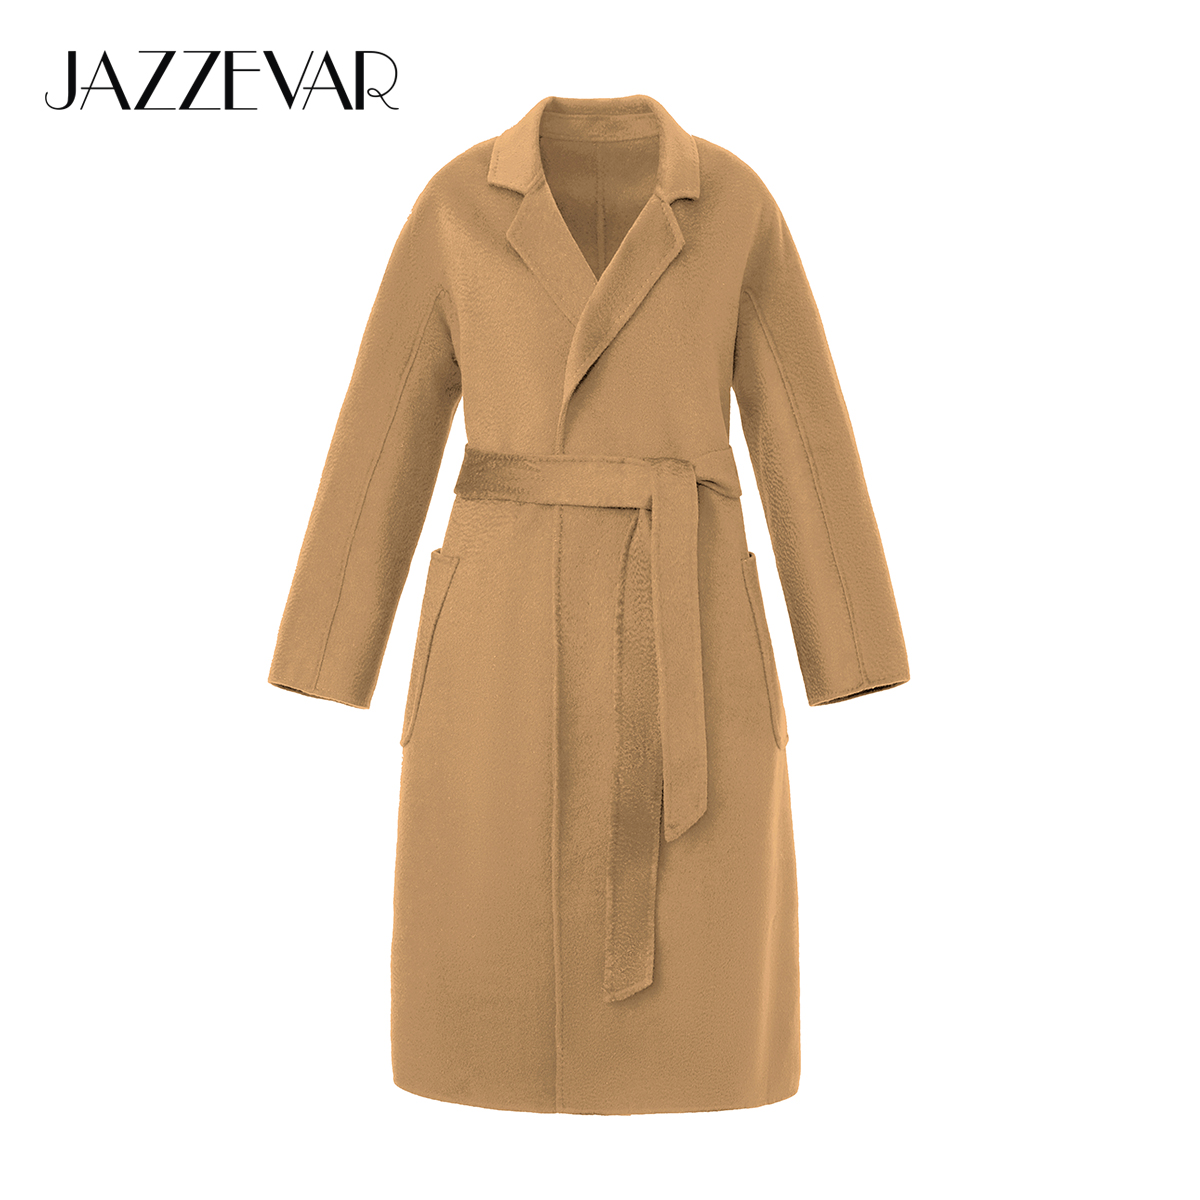 JAZZEVAR Women Classic Winter Double faced Cashmere Coat Female Plus size Outerwear For Lady Wavy 100 Wool Coats Loose Clothing|Wool & Blends| - AliExpress